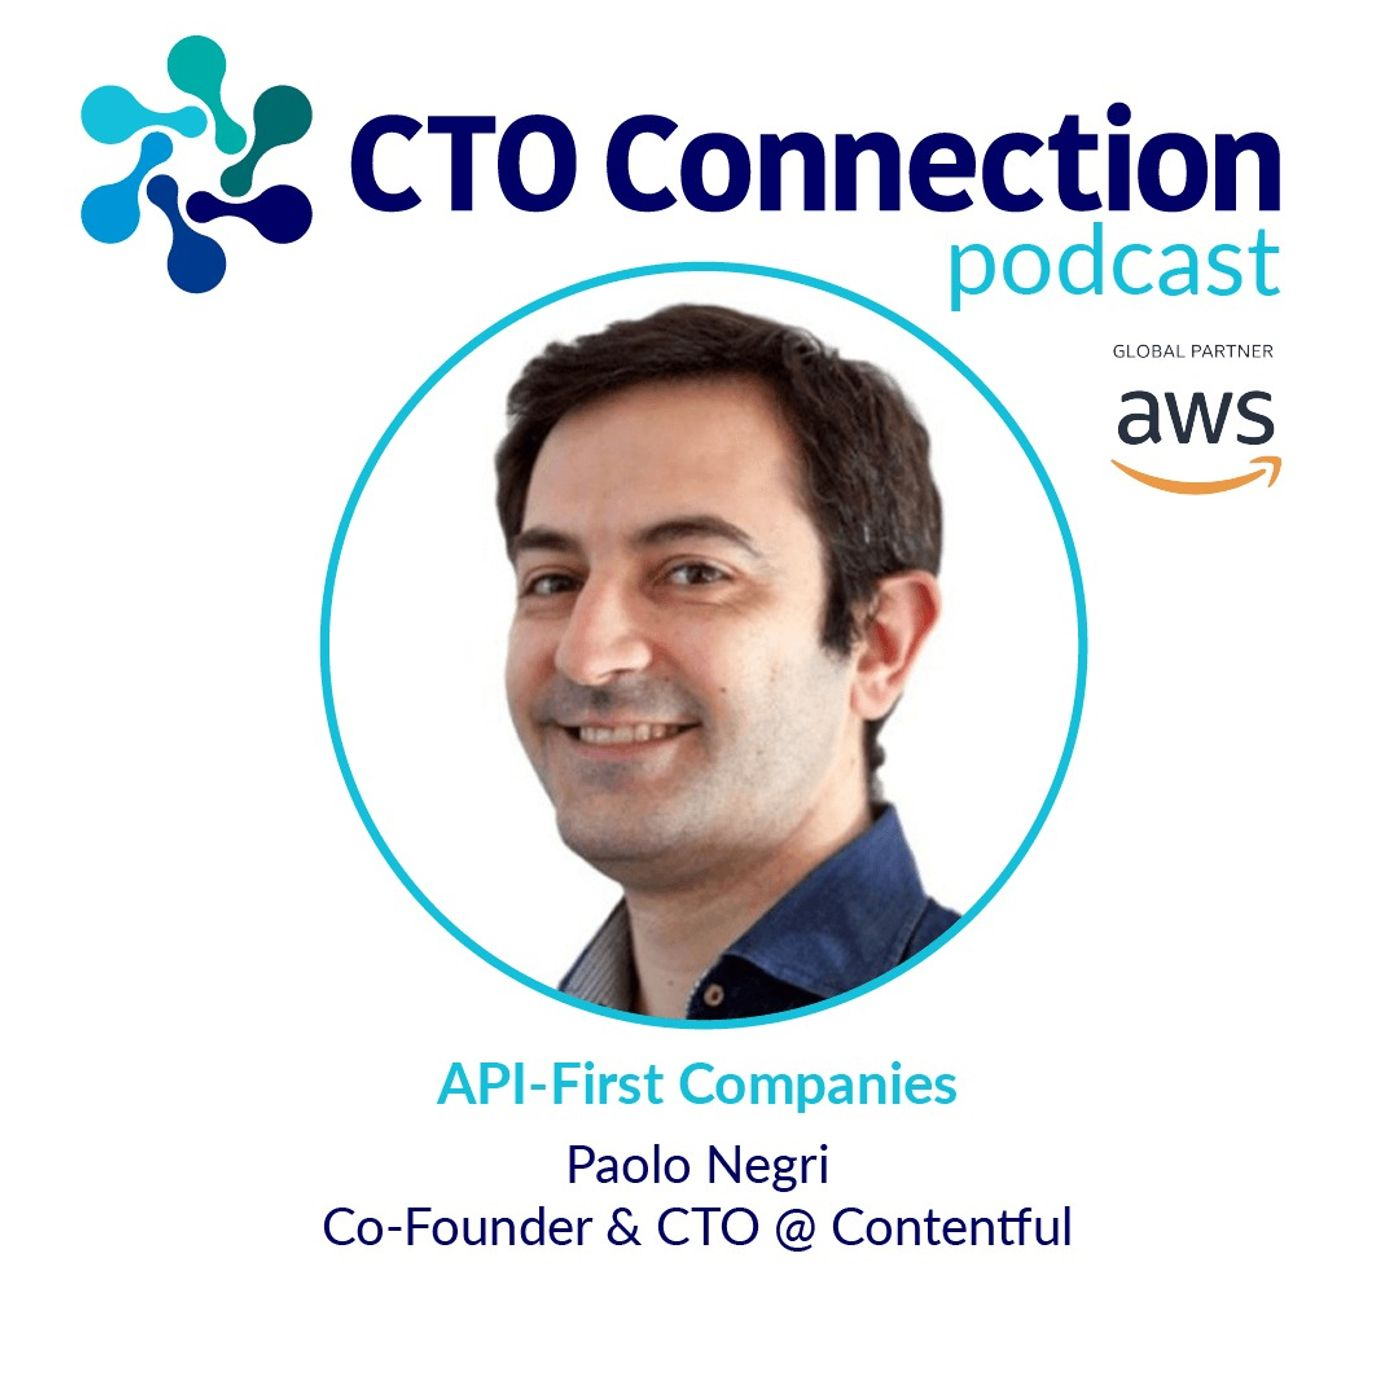 API-First Companies with Paolo Negri